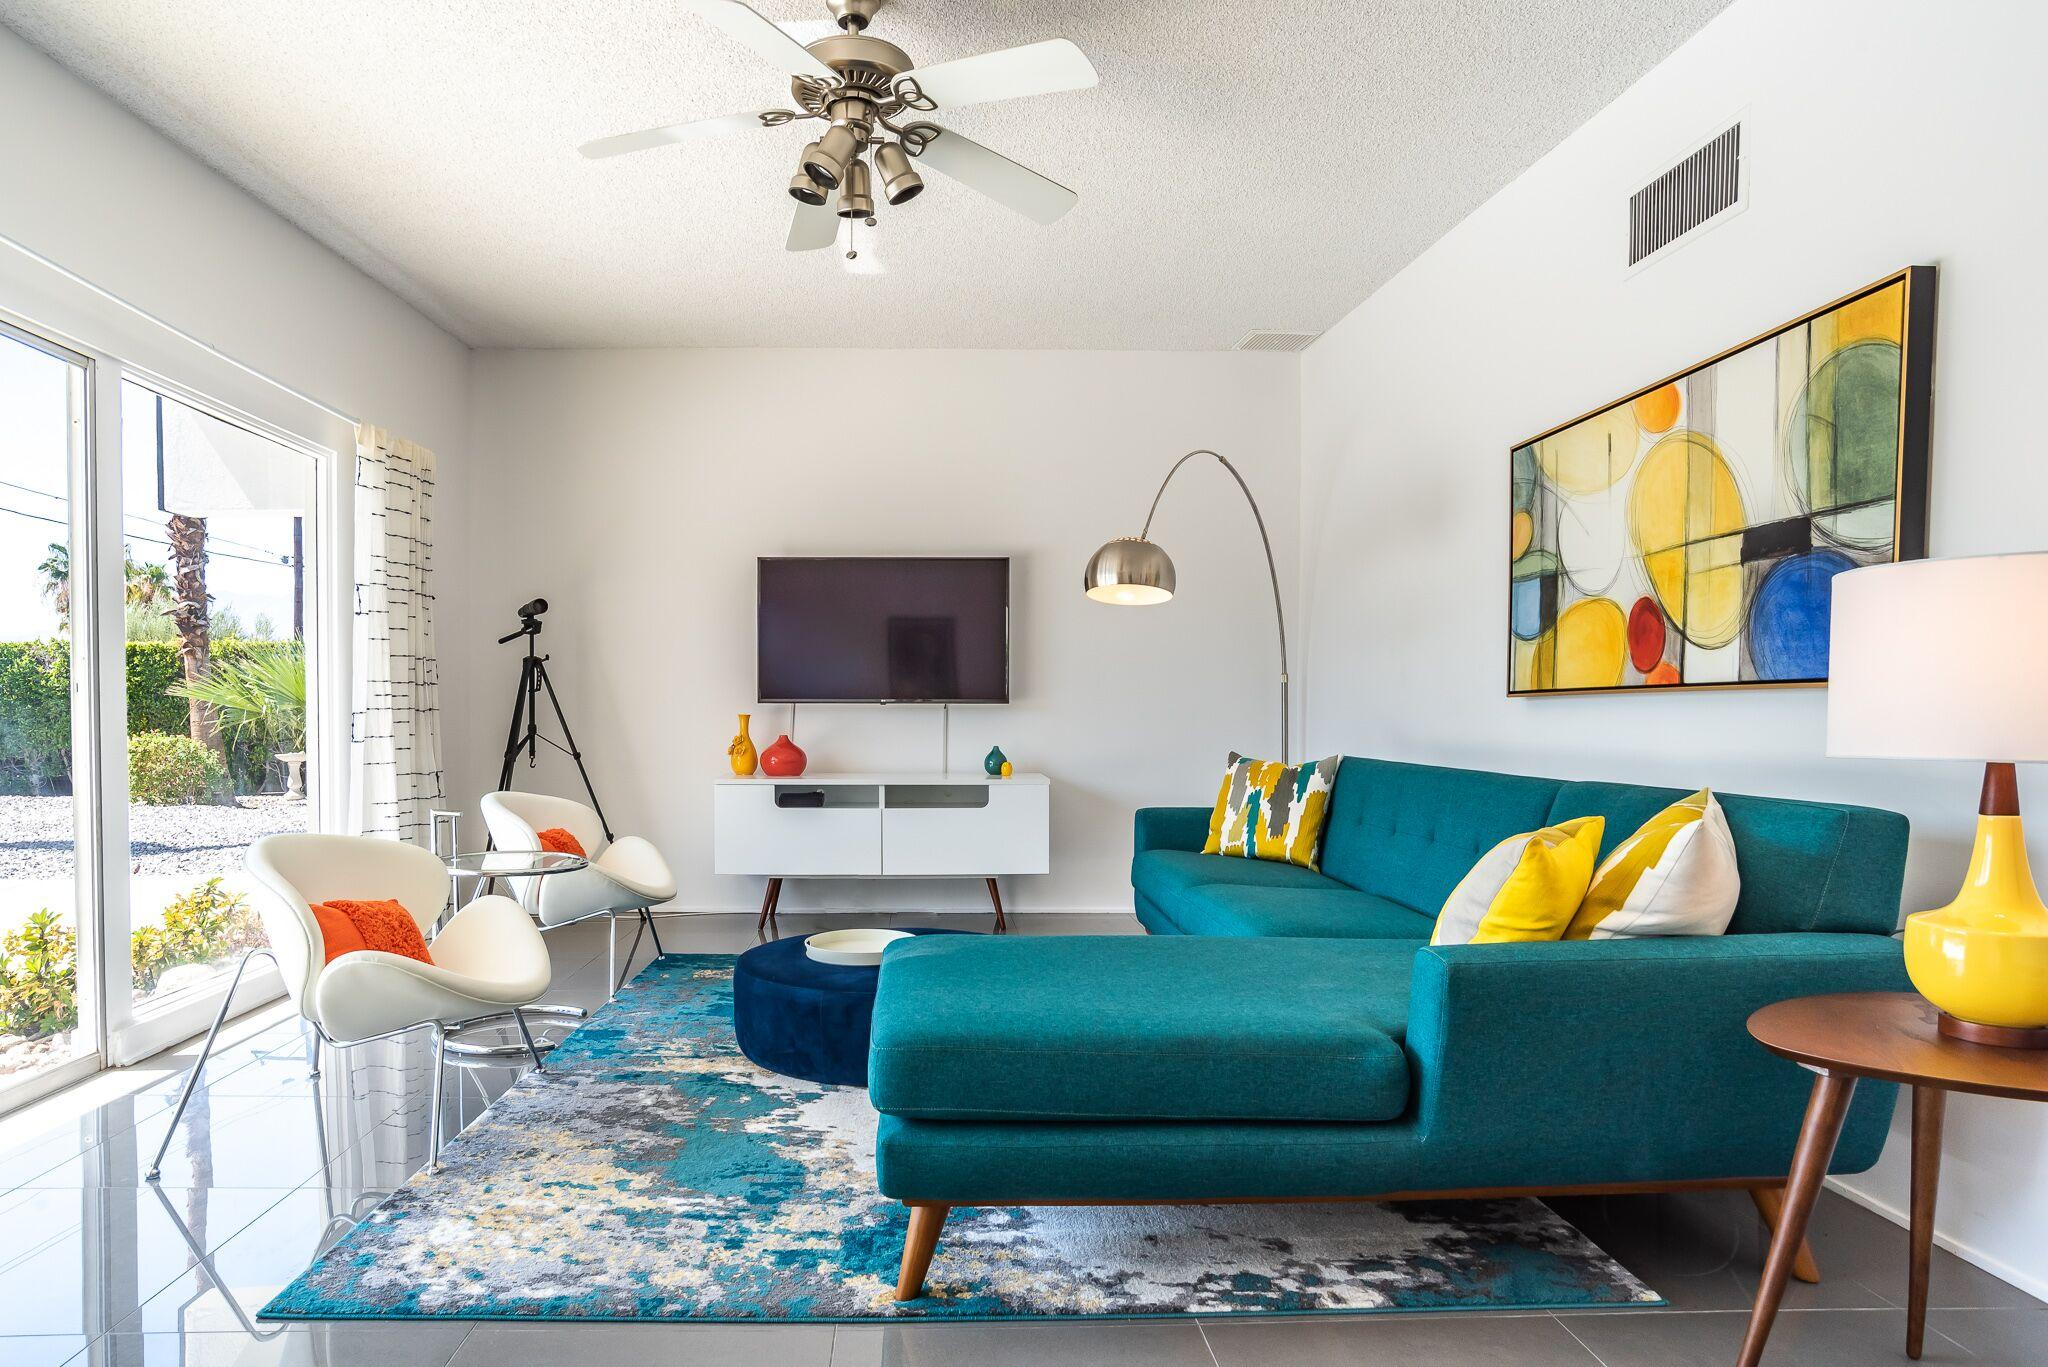 The stylish living room includes a sectional and 2 armchairs.